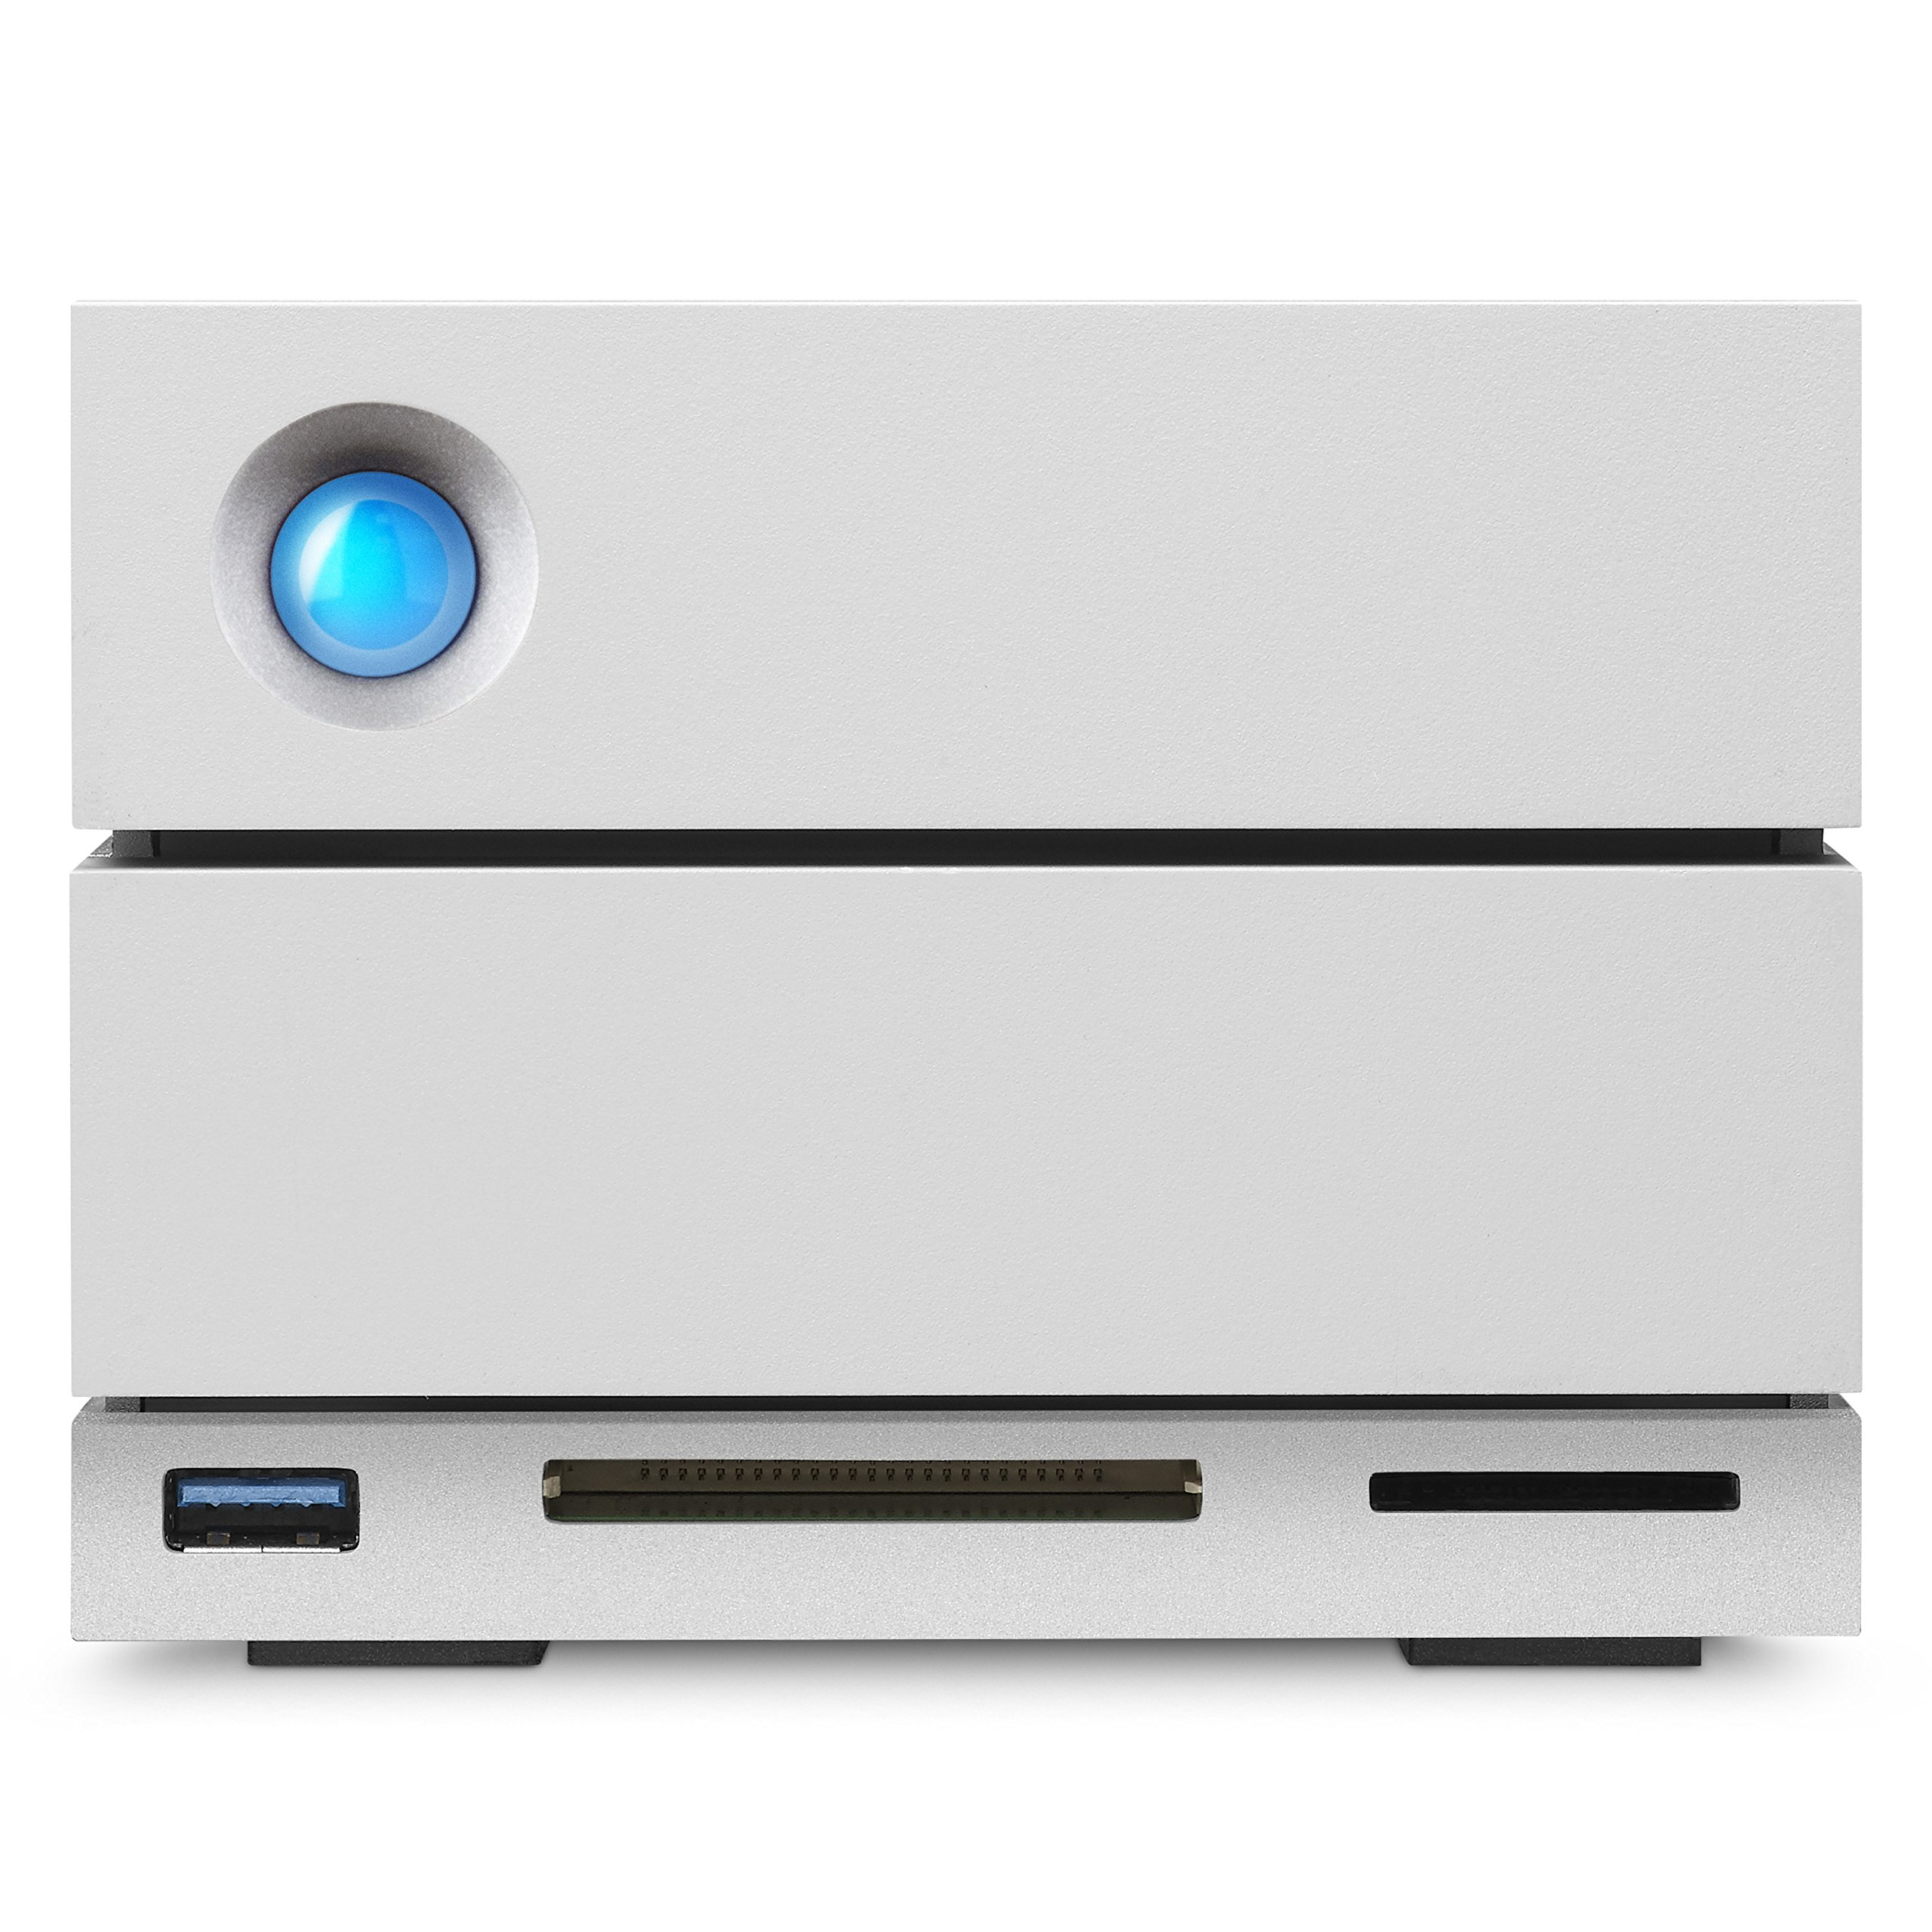 LaCie 2big Dock Thunderbolt 3 12TB (stgb12000400) by LaCie